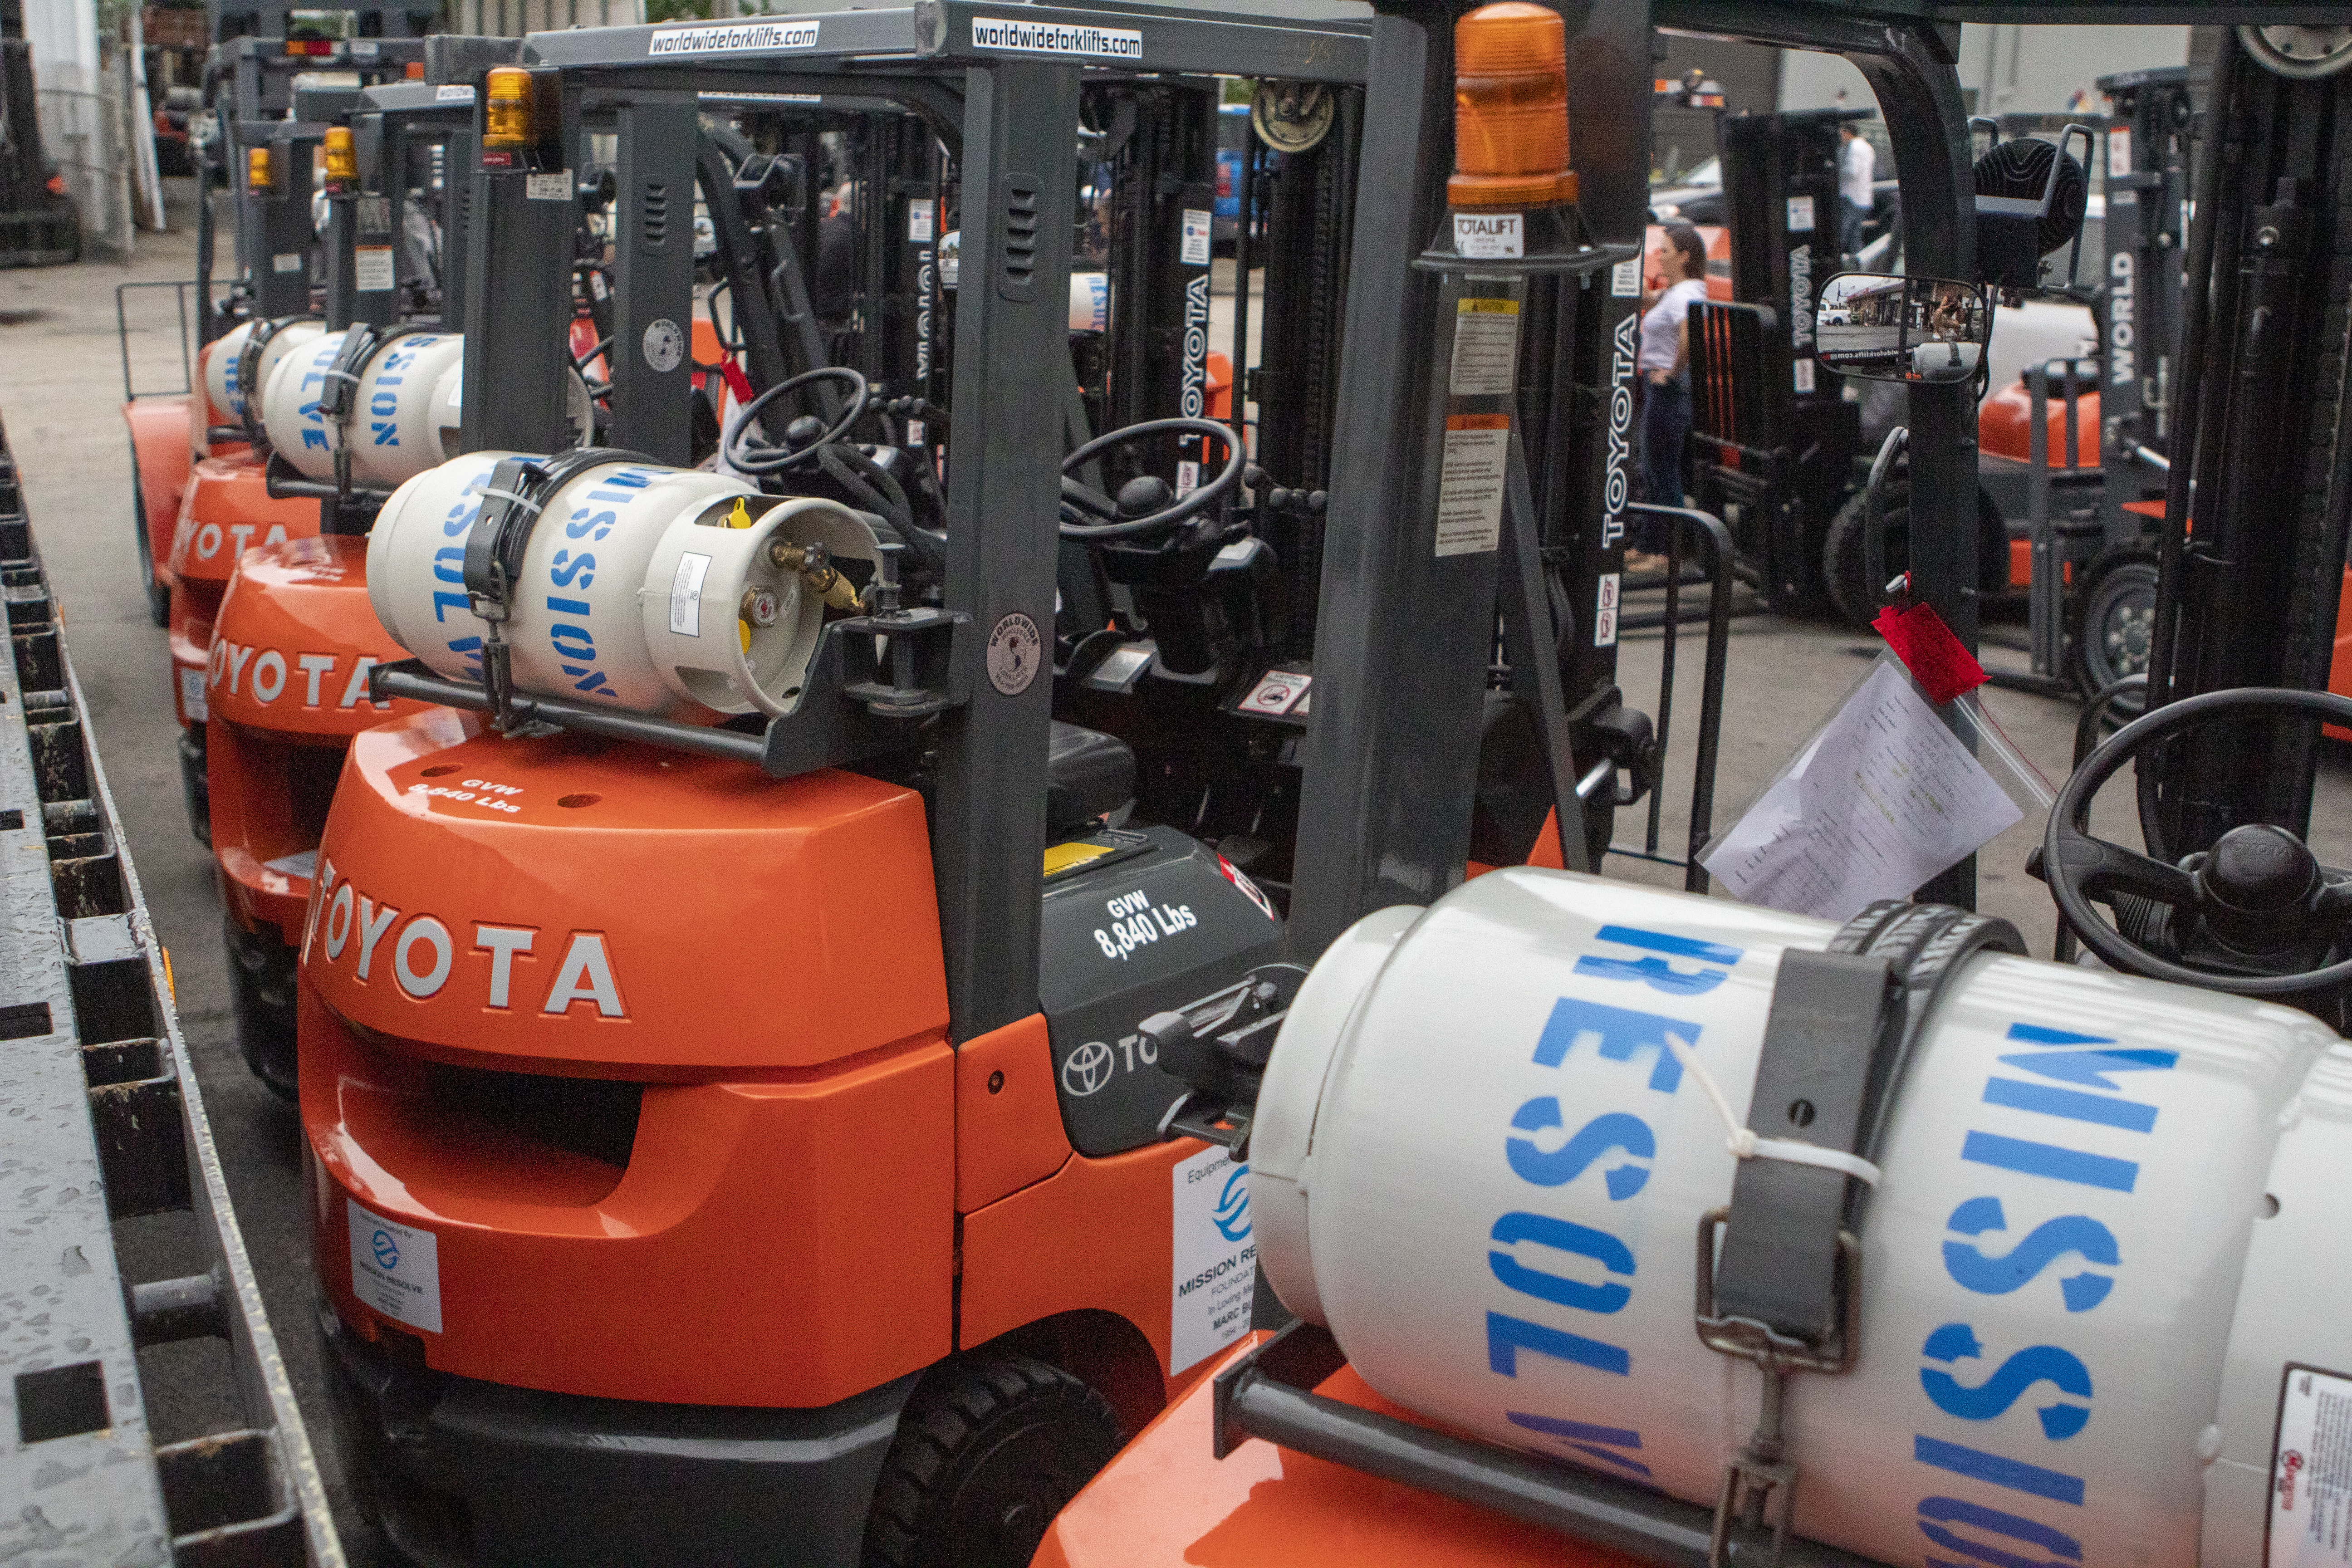 Mission Resolve donated Forklifts and propane tanks